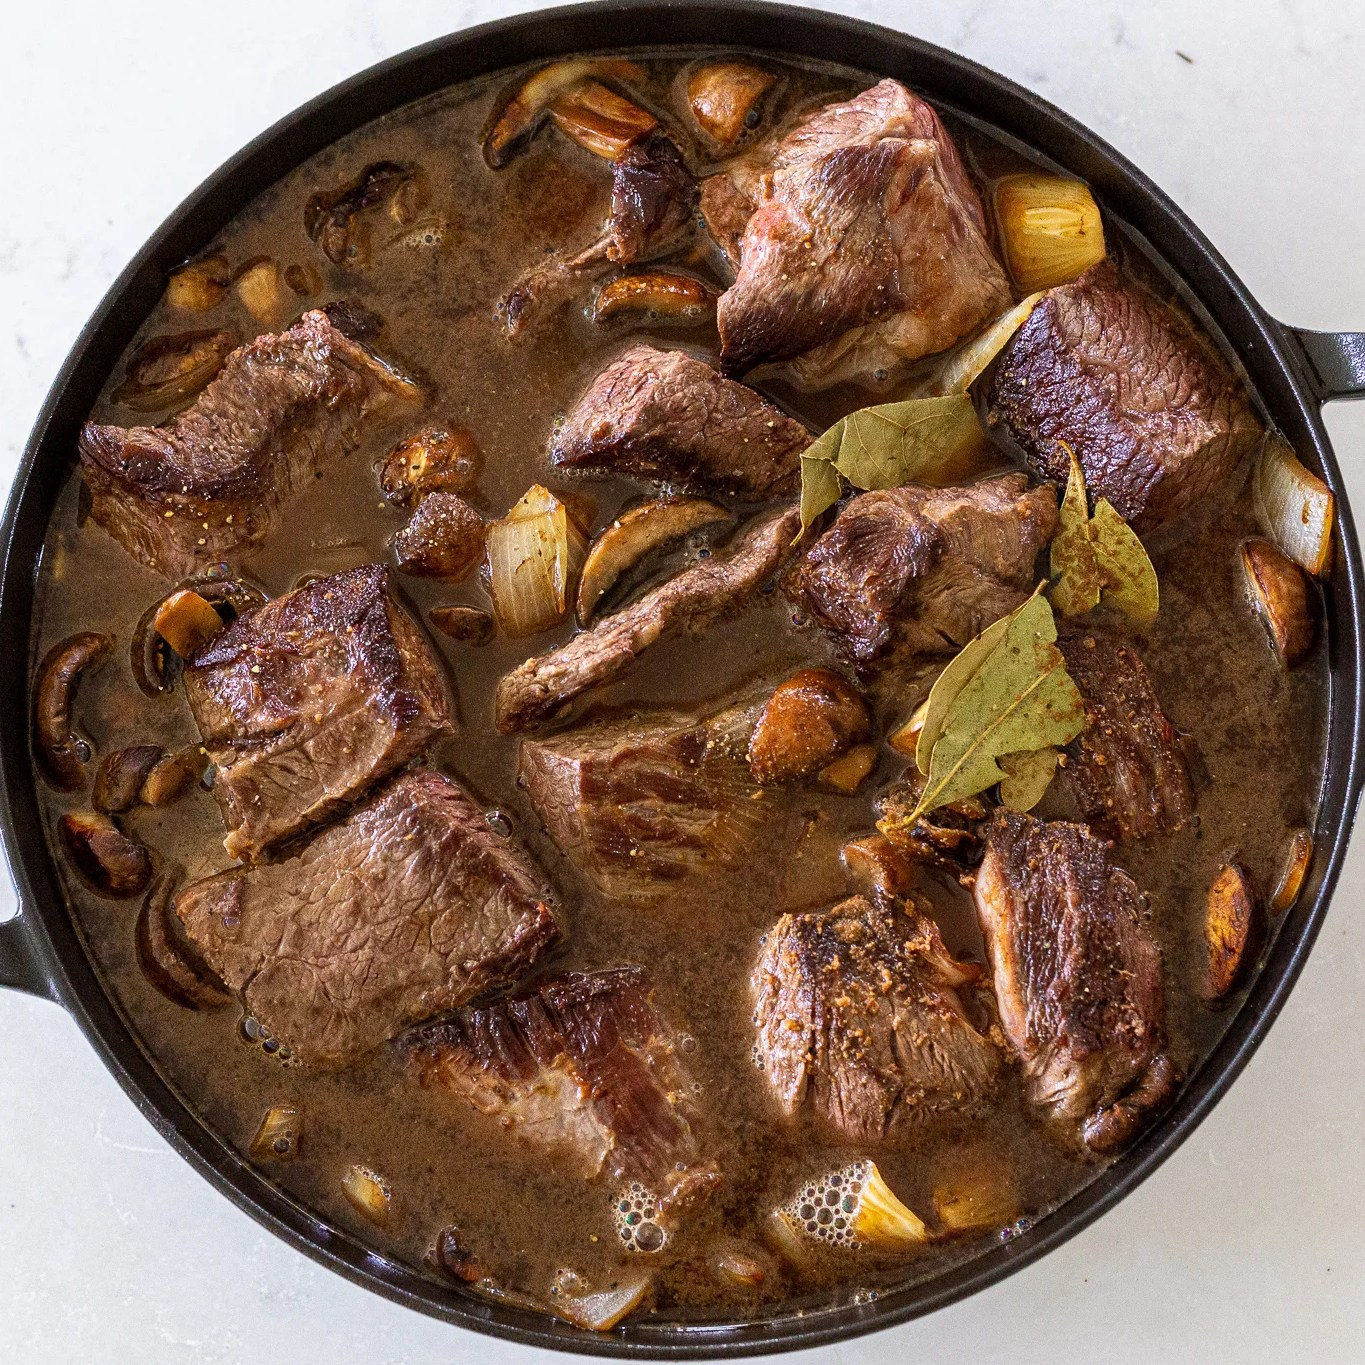 beef with broth and seasoning in a pan